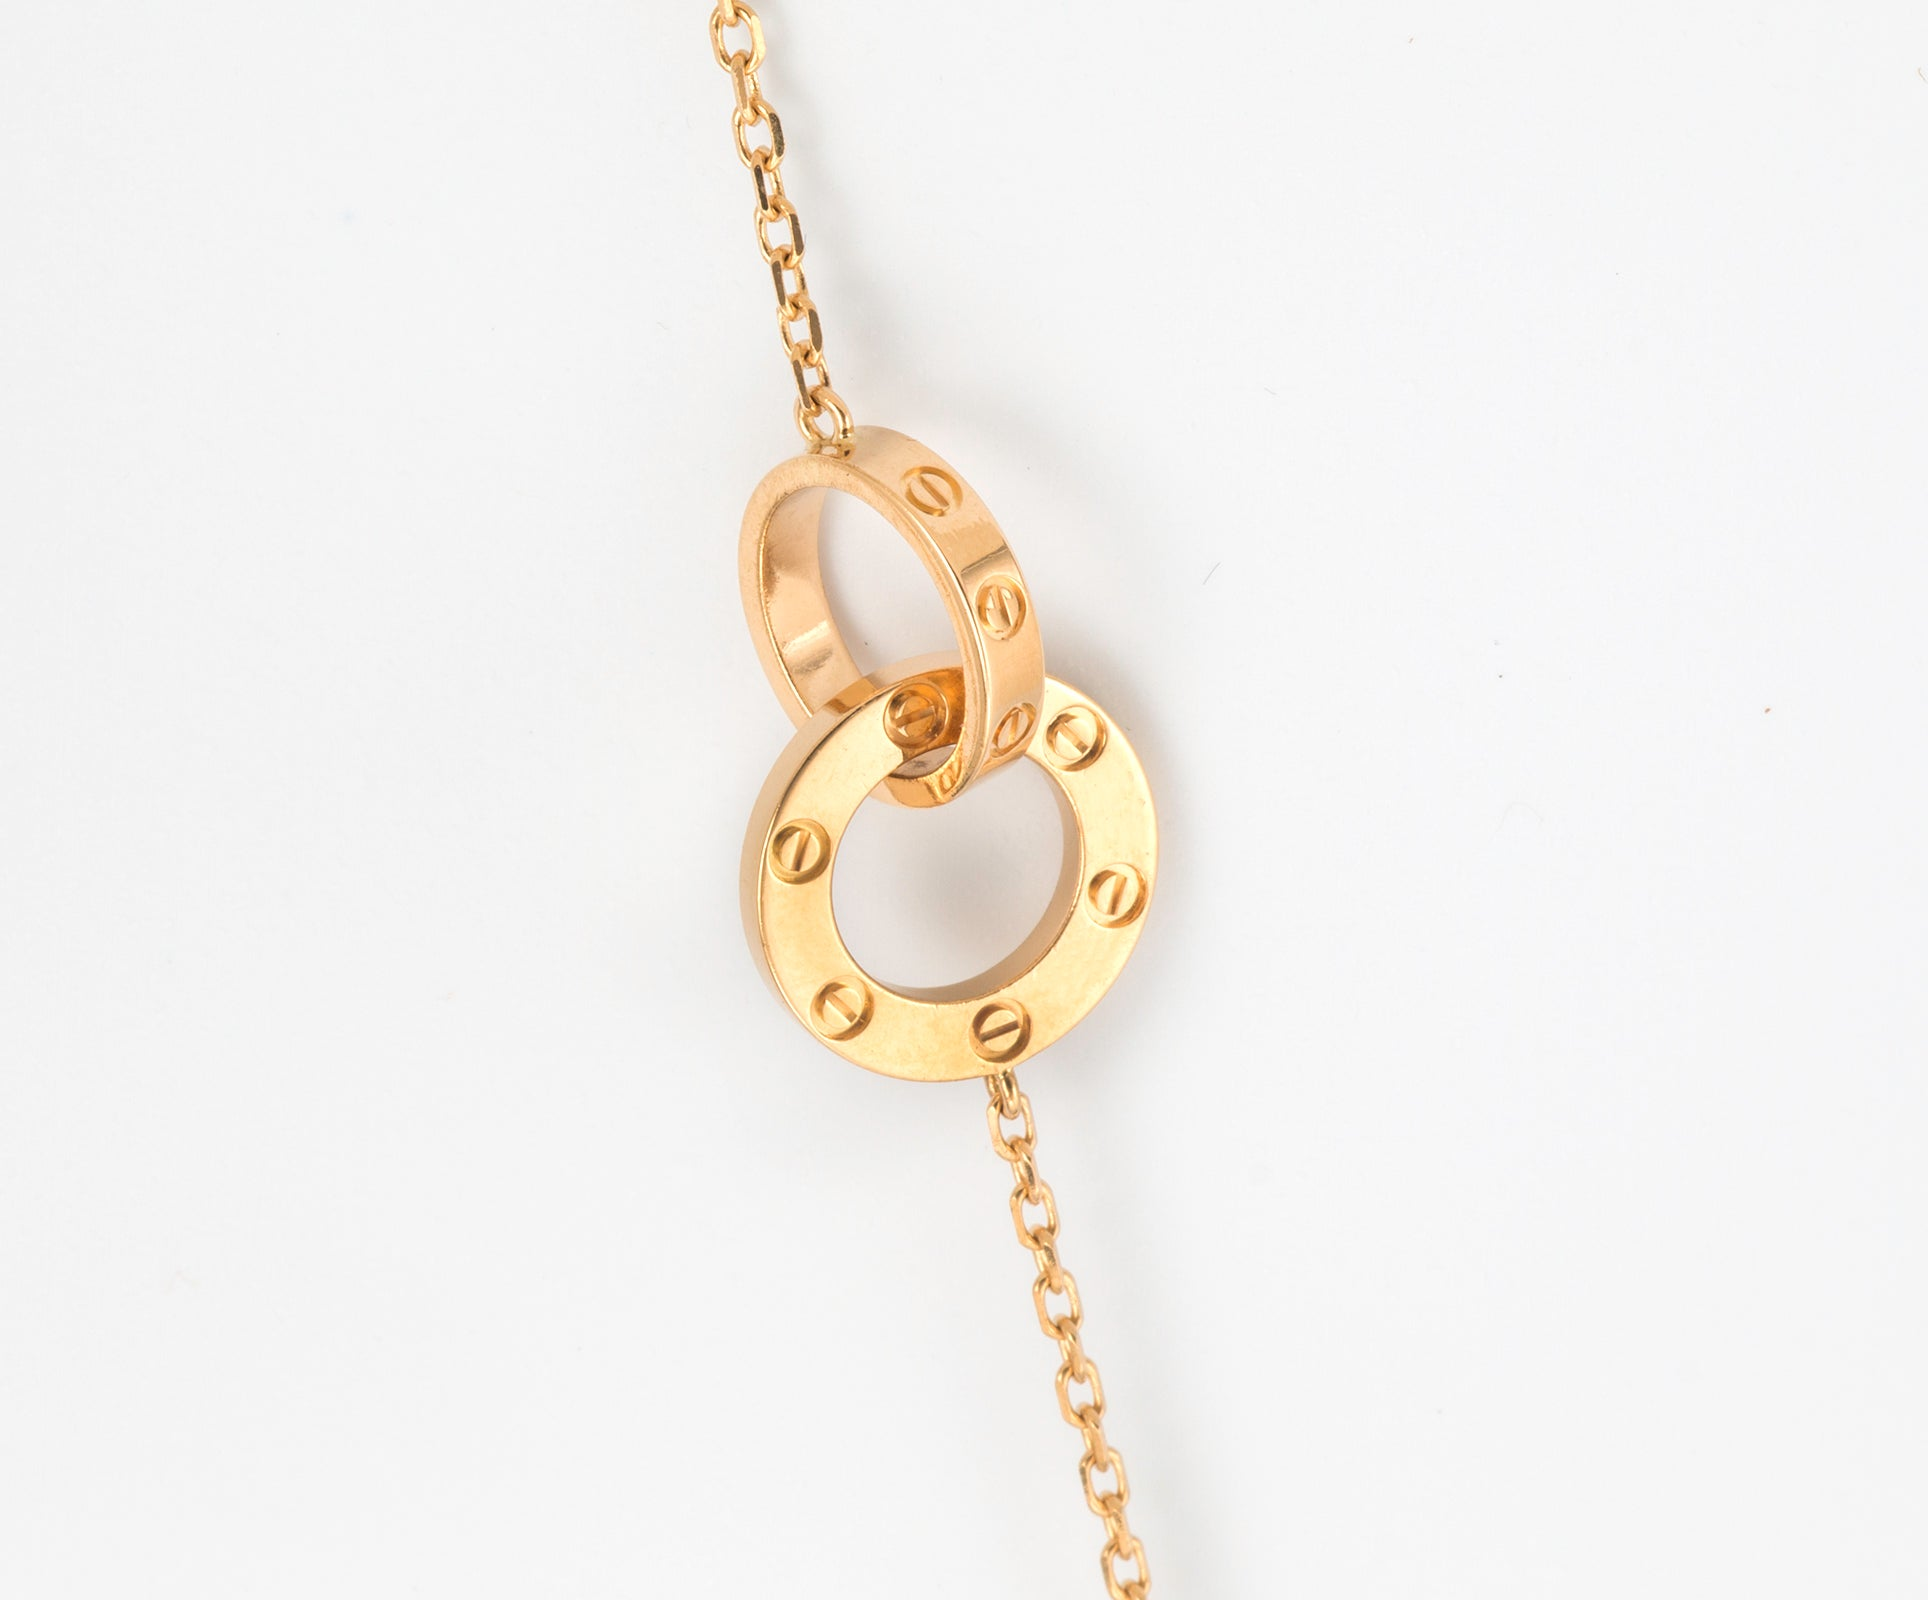 Cartier love rings gold chain link necklace for sale at 1stdibs aloadofball Choice Image